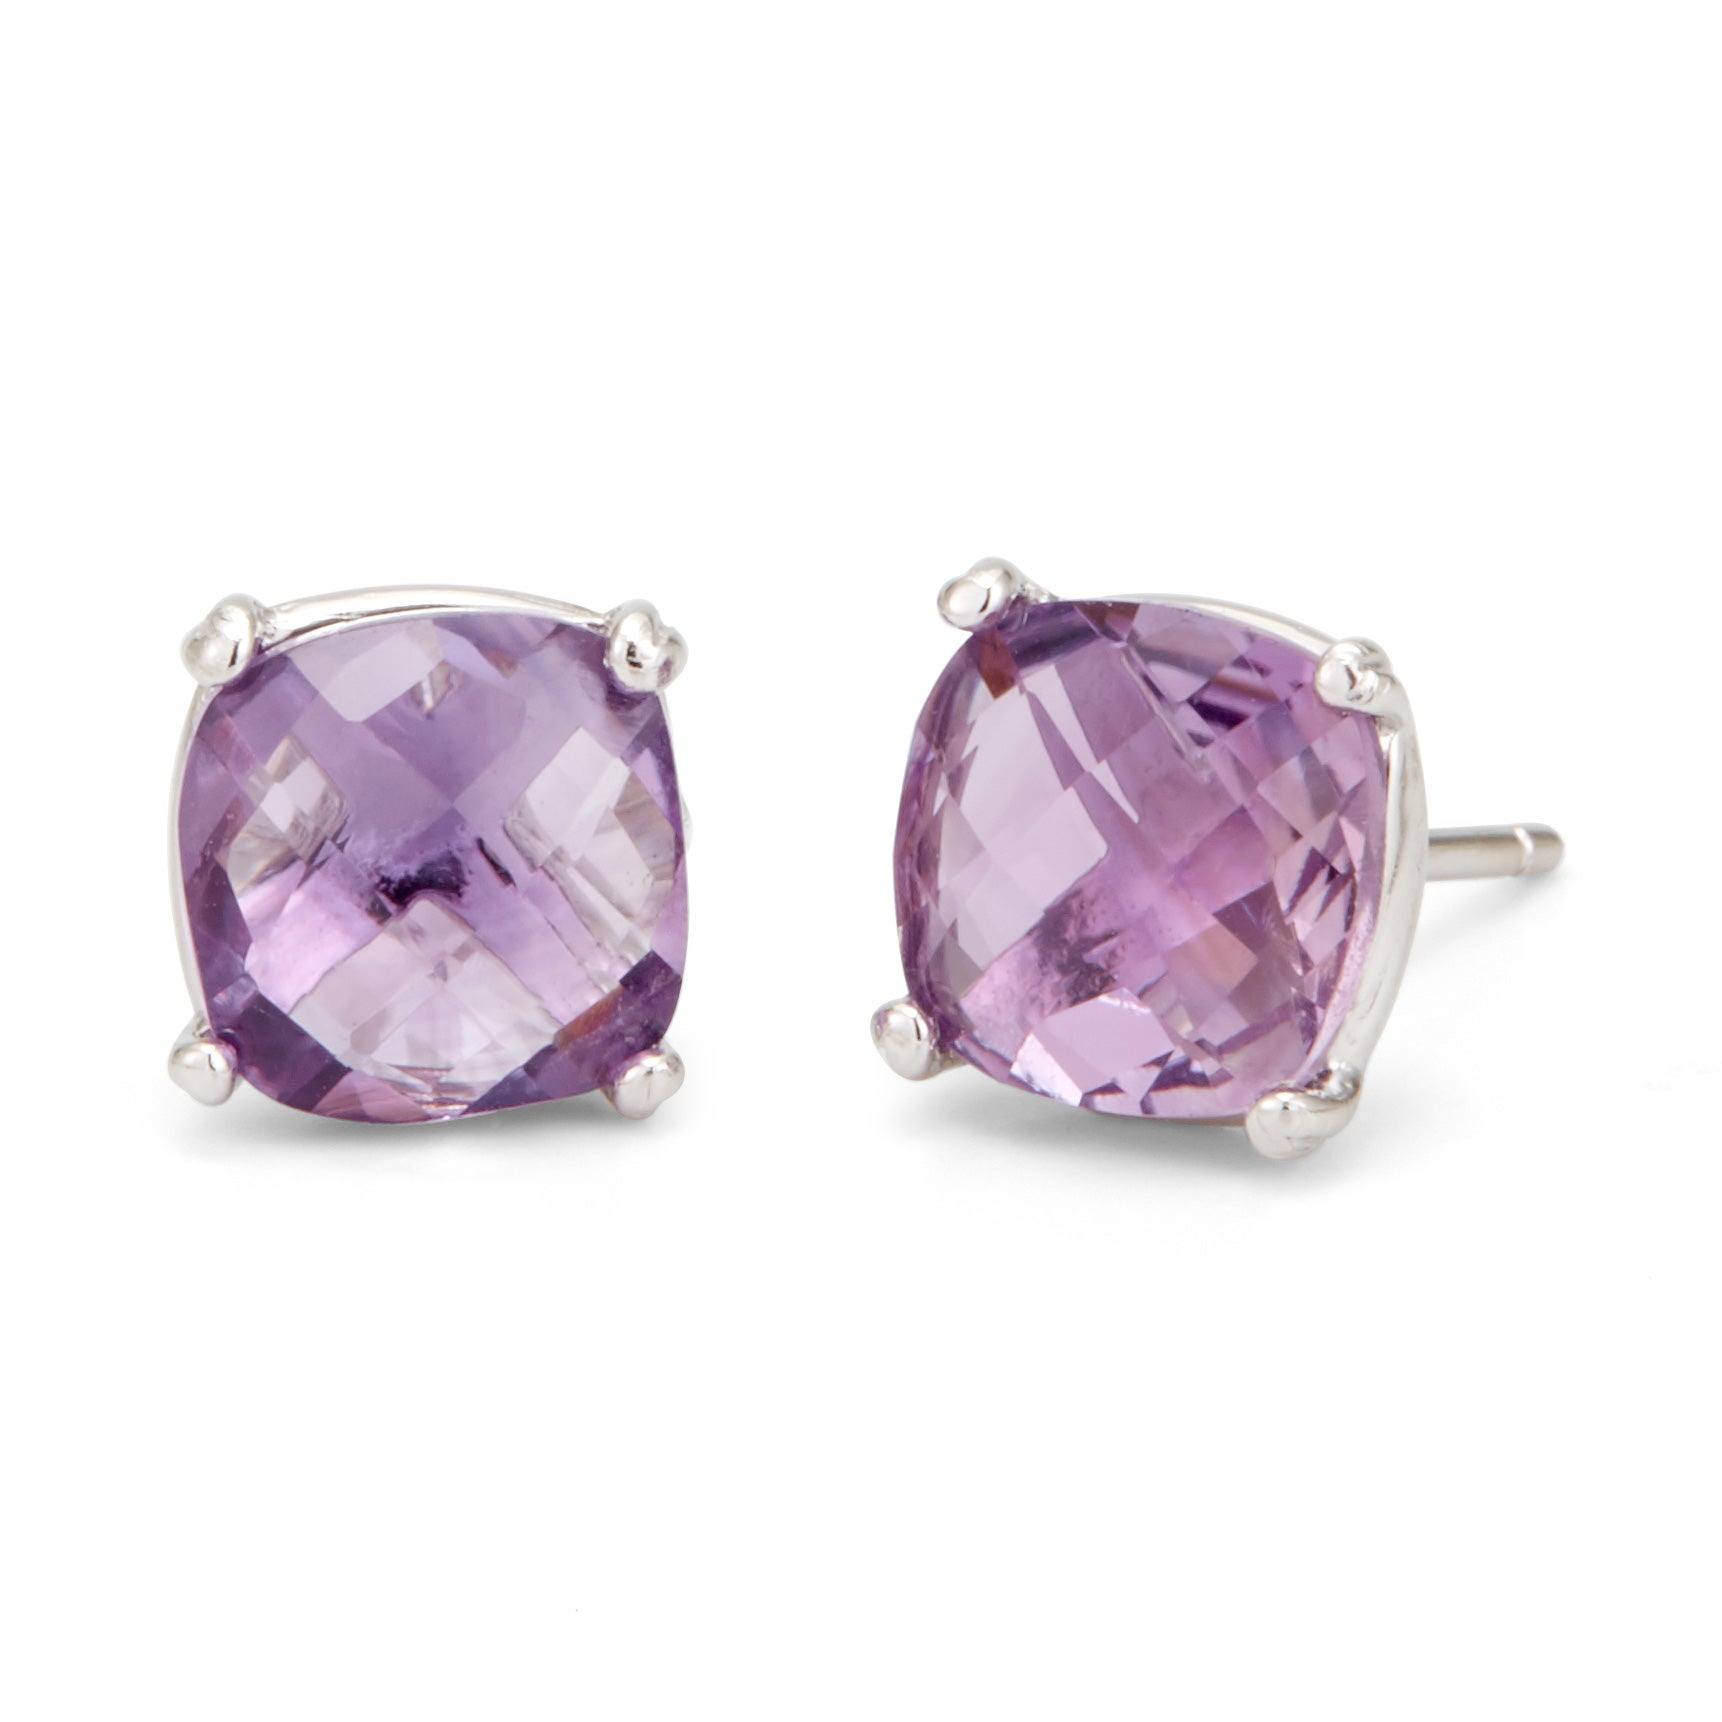 February Amethyst Cushion Cut Gemstone Silver Earrings